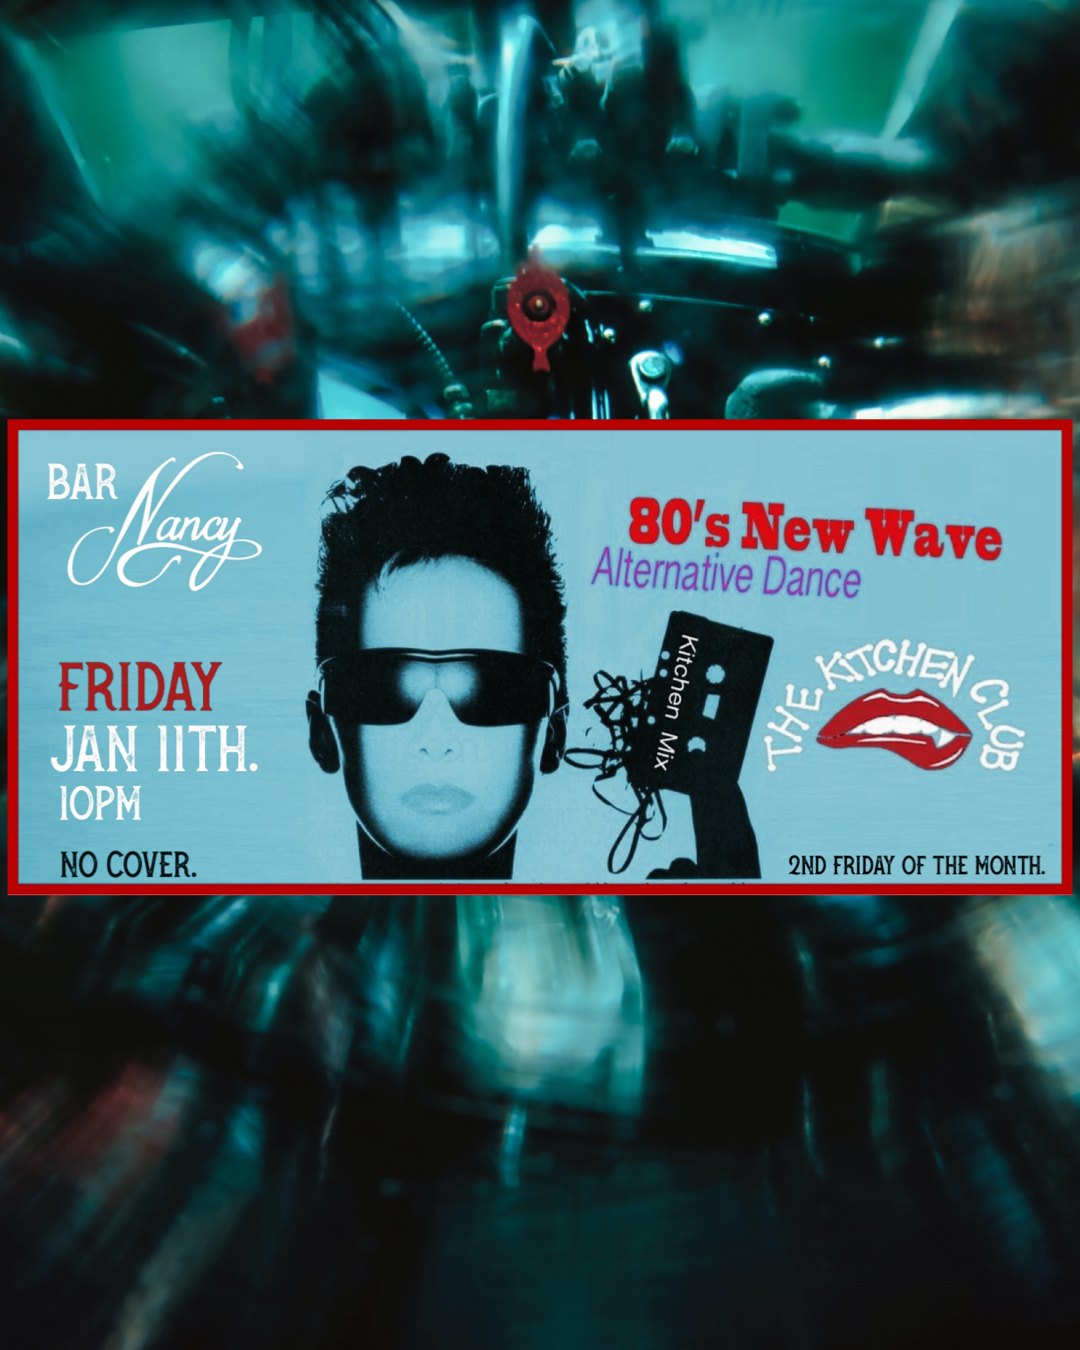 80's New Wave - Alternative Dance - The Kitchen Club - Friday Jan 11th - 10 PM - No Cover - 2nd Friday of the month